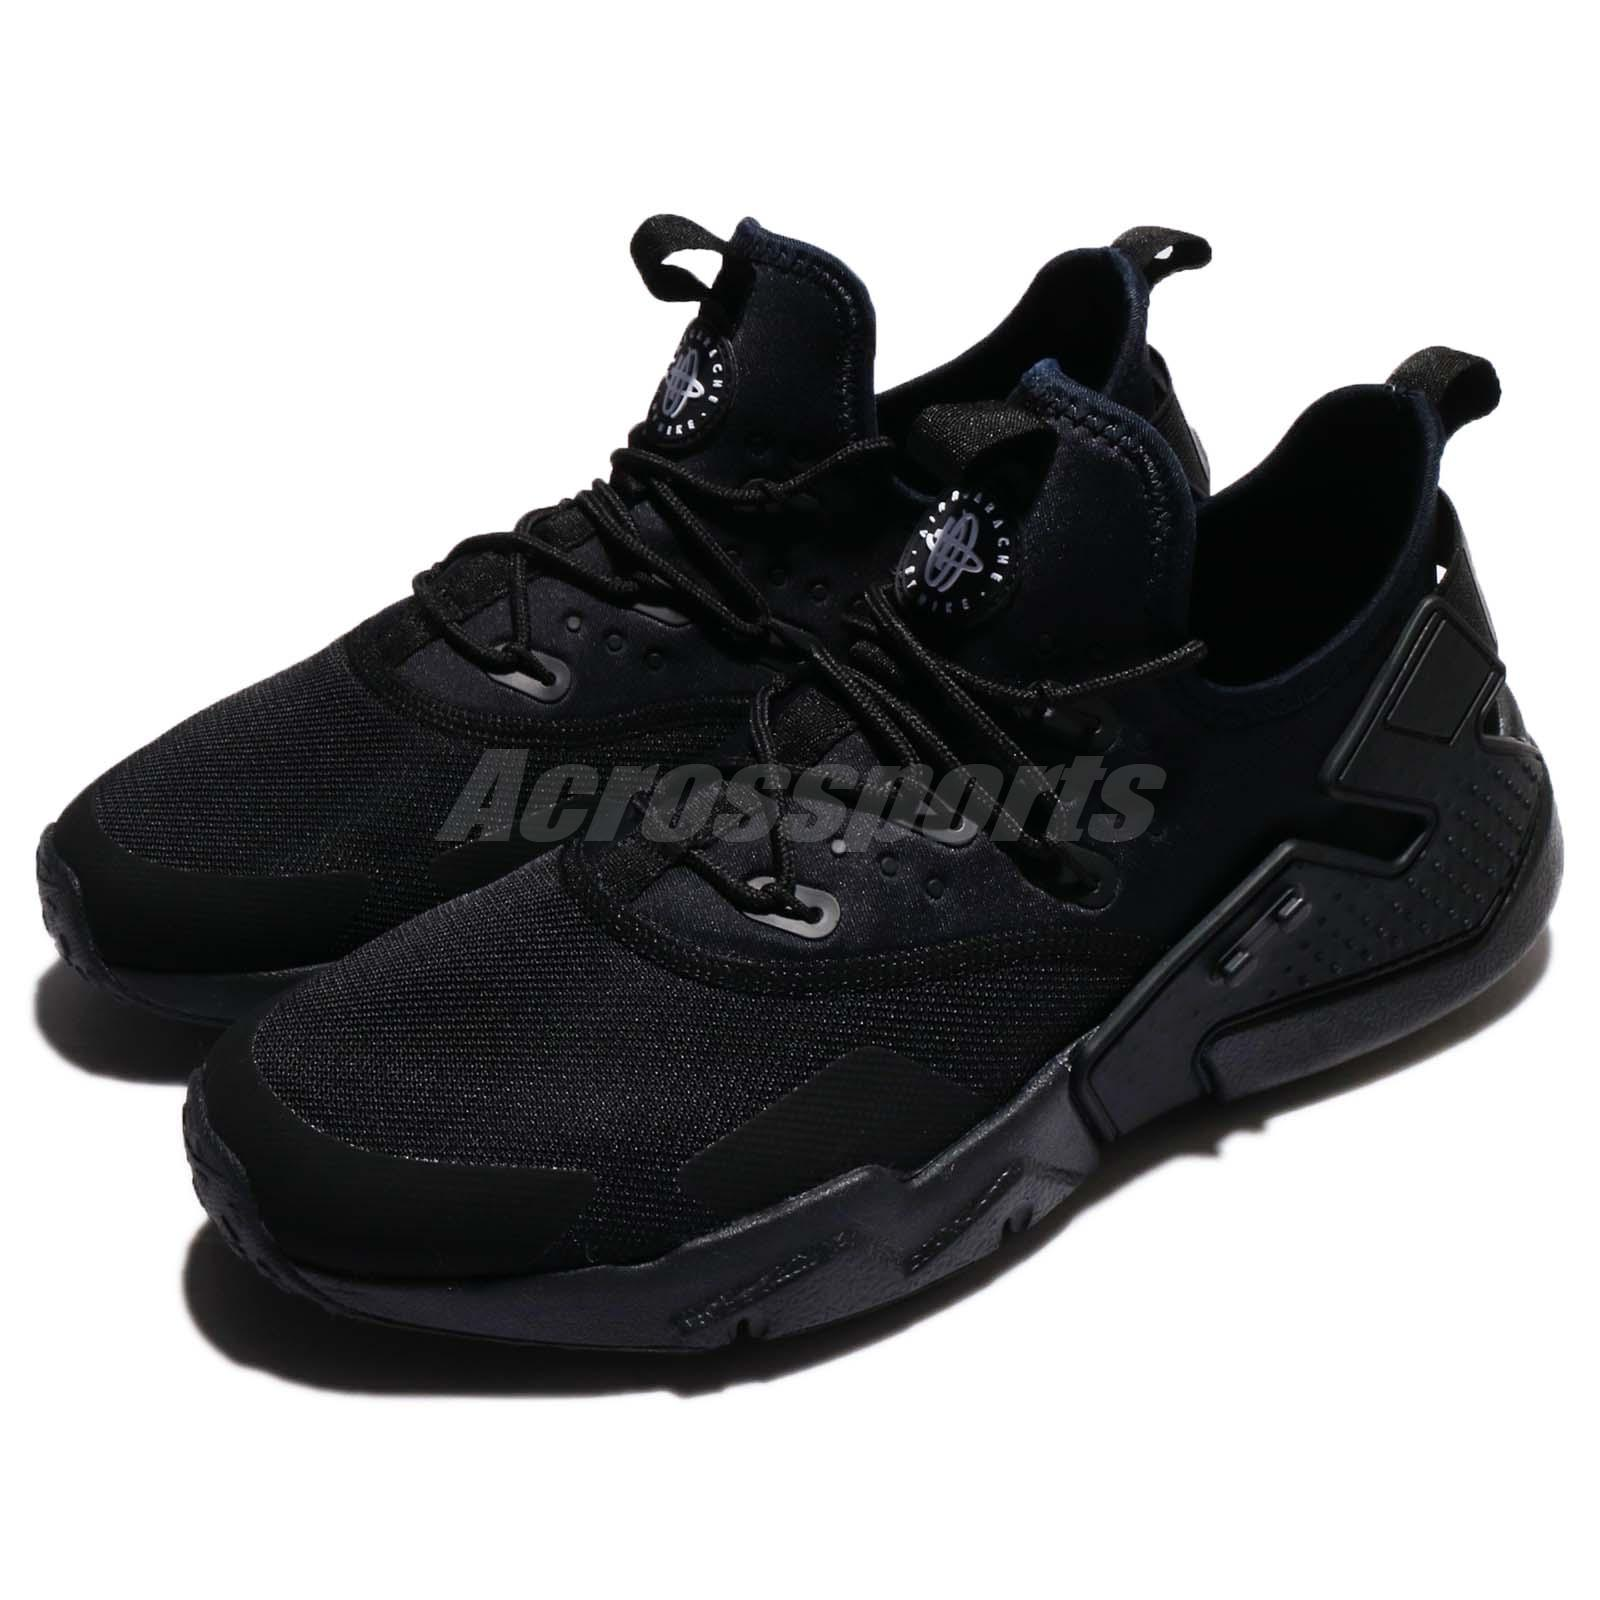 3c6689536330 Details about Nike Air Huarache Drift Black White Mens Running Shoes  Sneakers AH7334-003